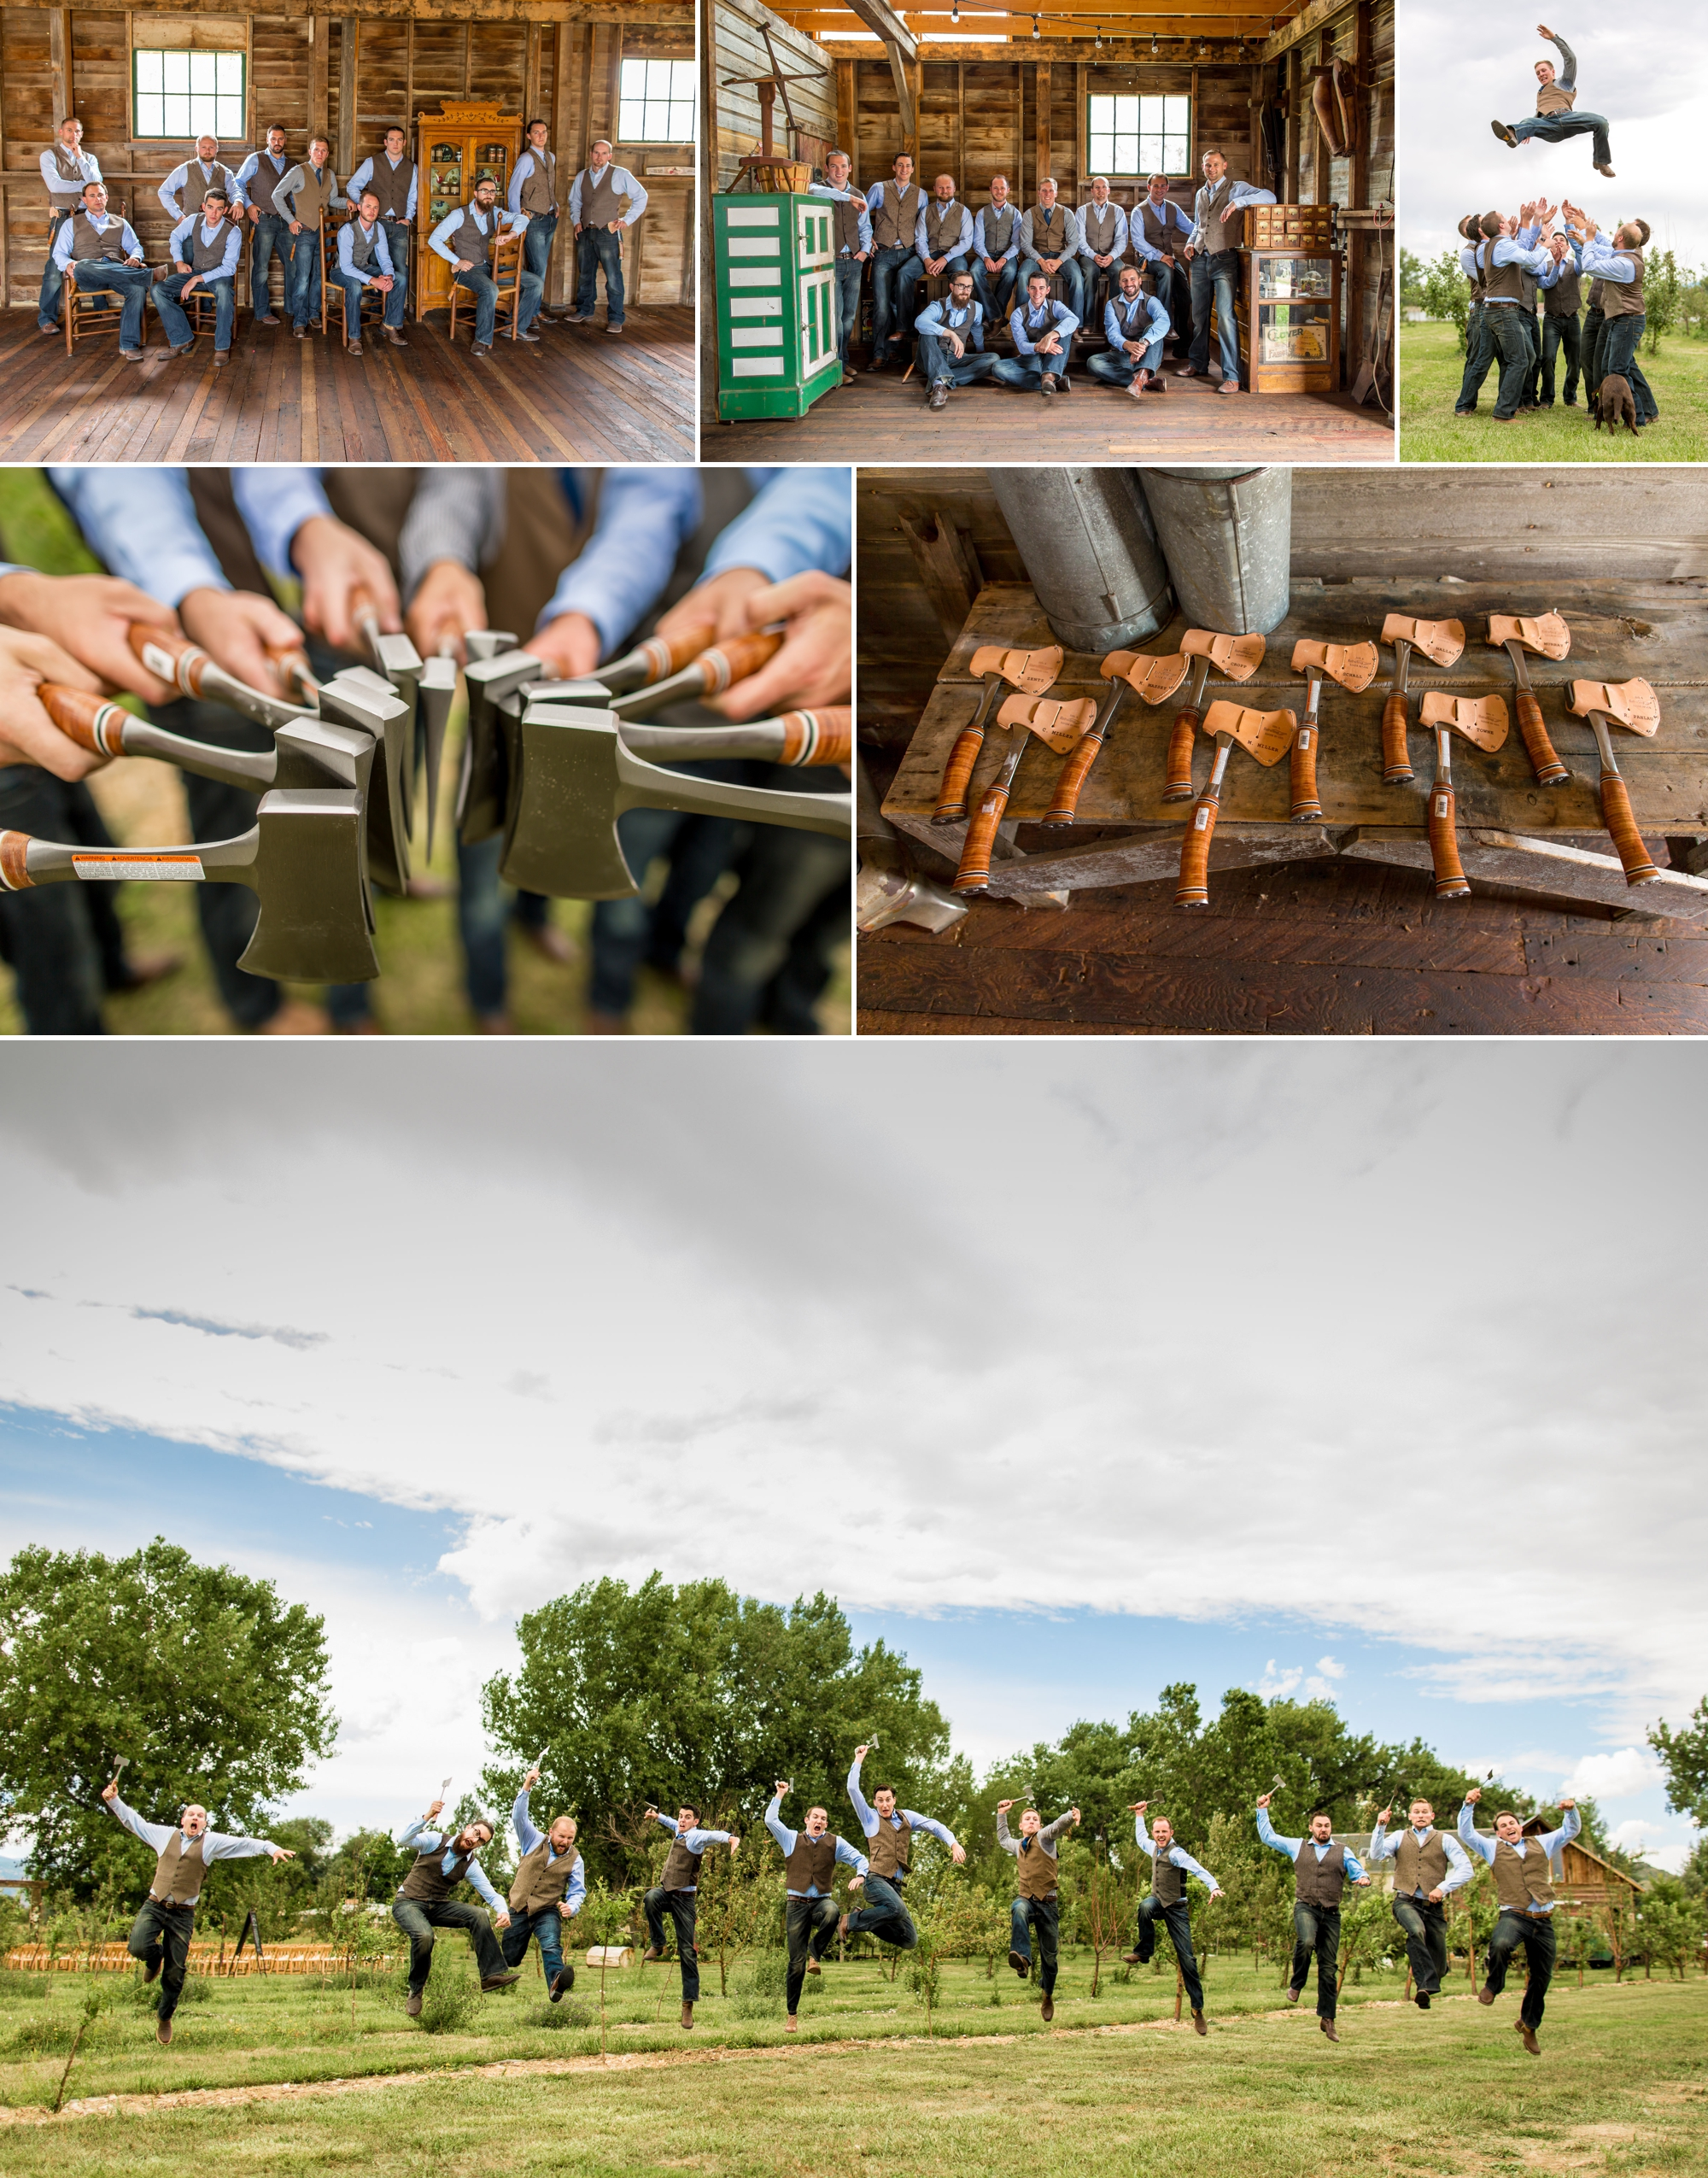 Groomsman photos complete with the rustic barn, hatches and why not, the groom 10' in the air!